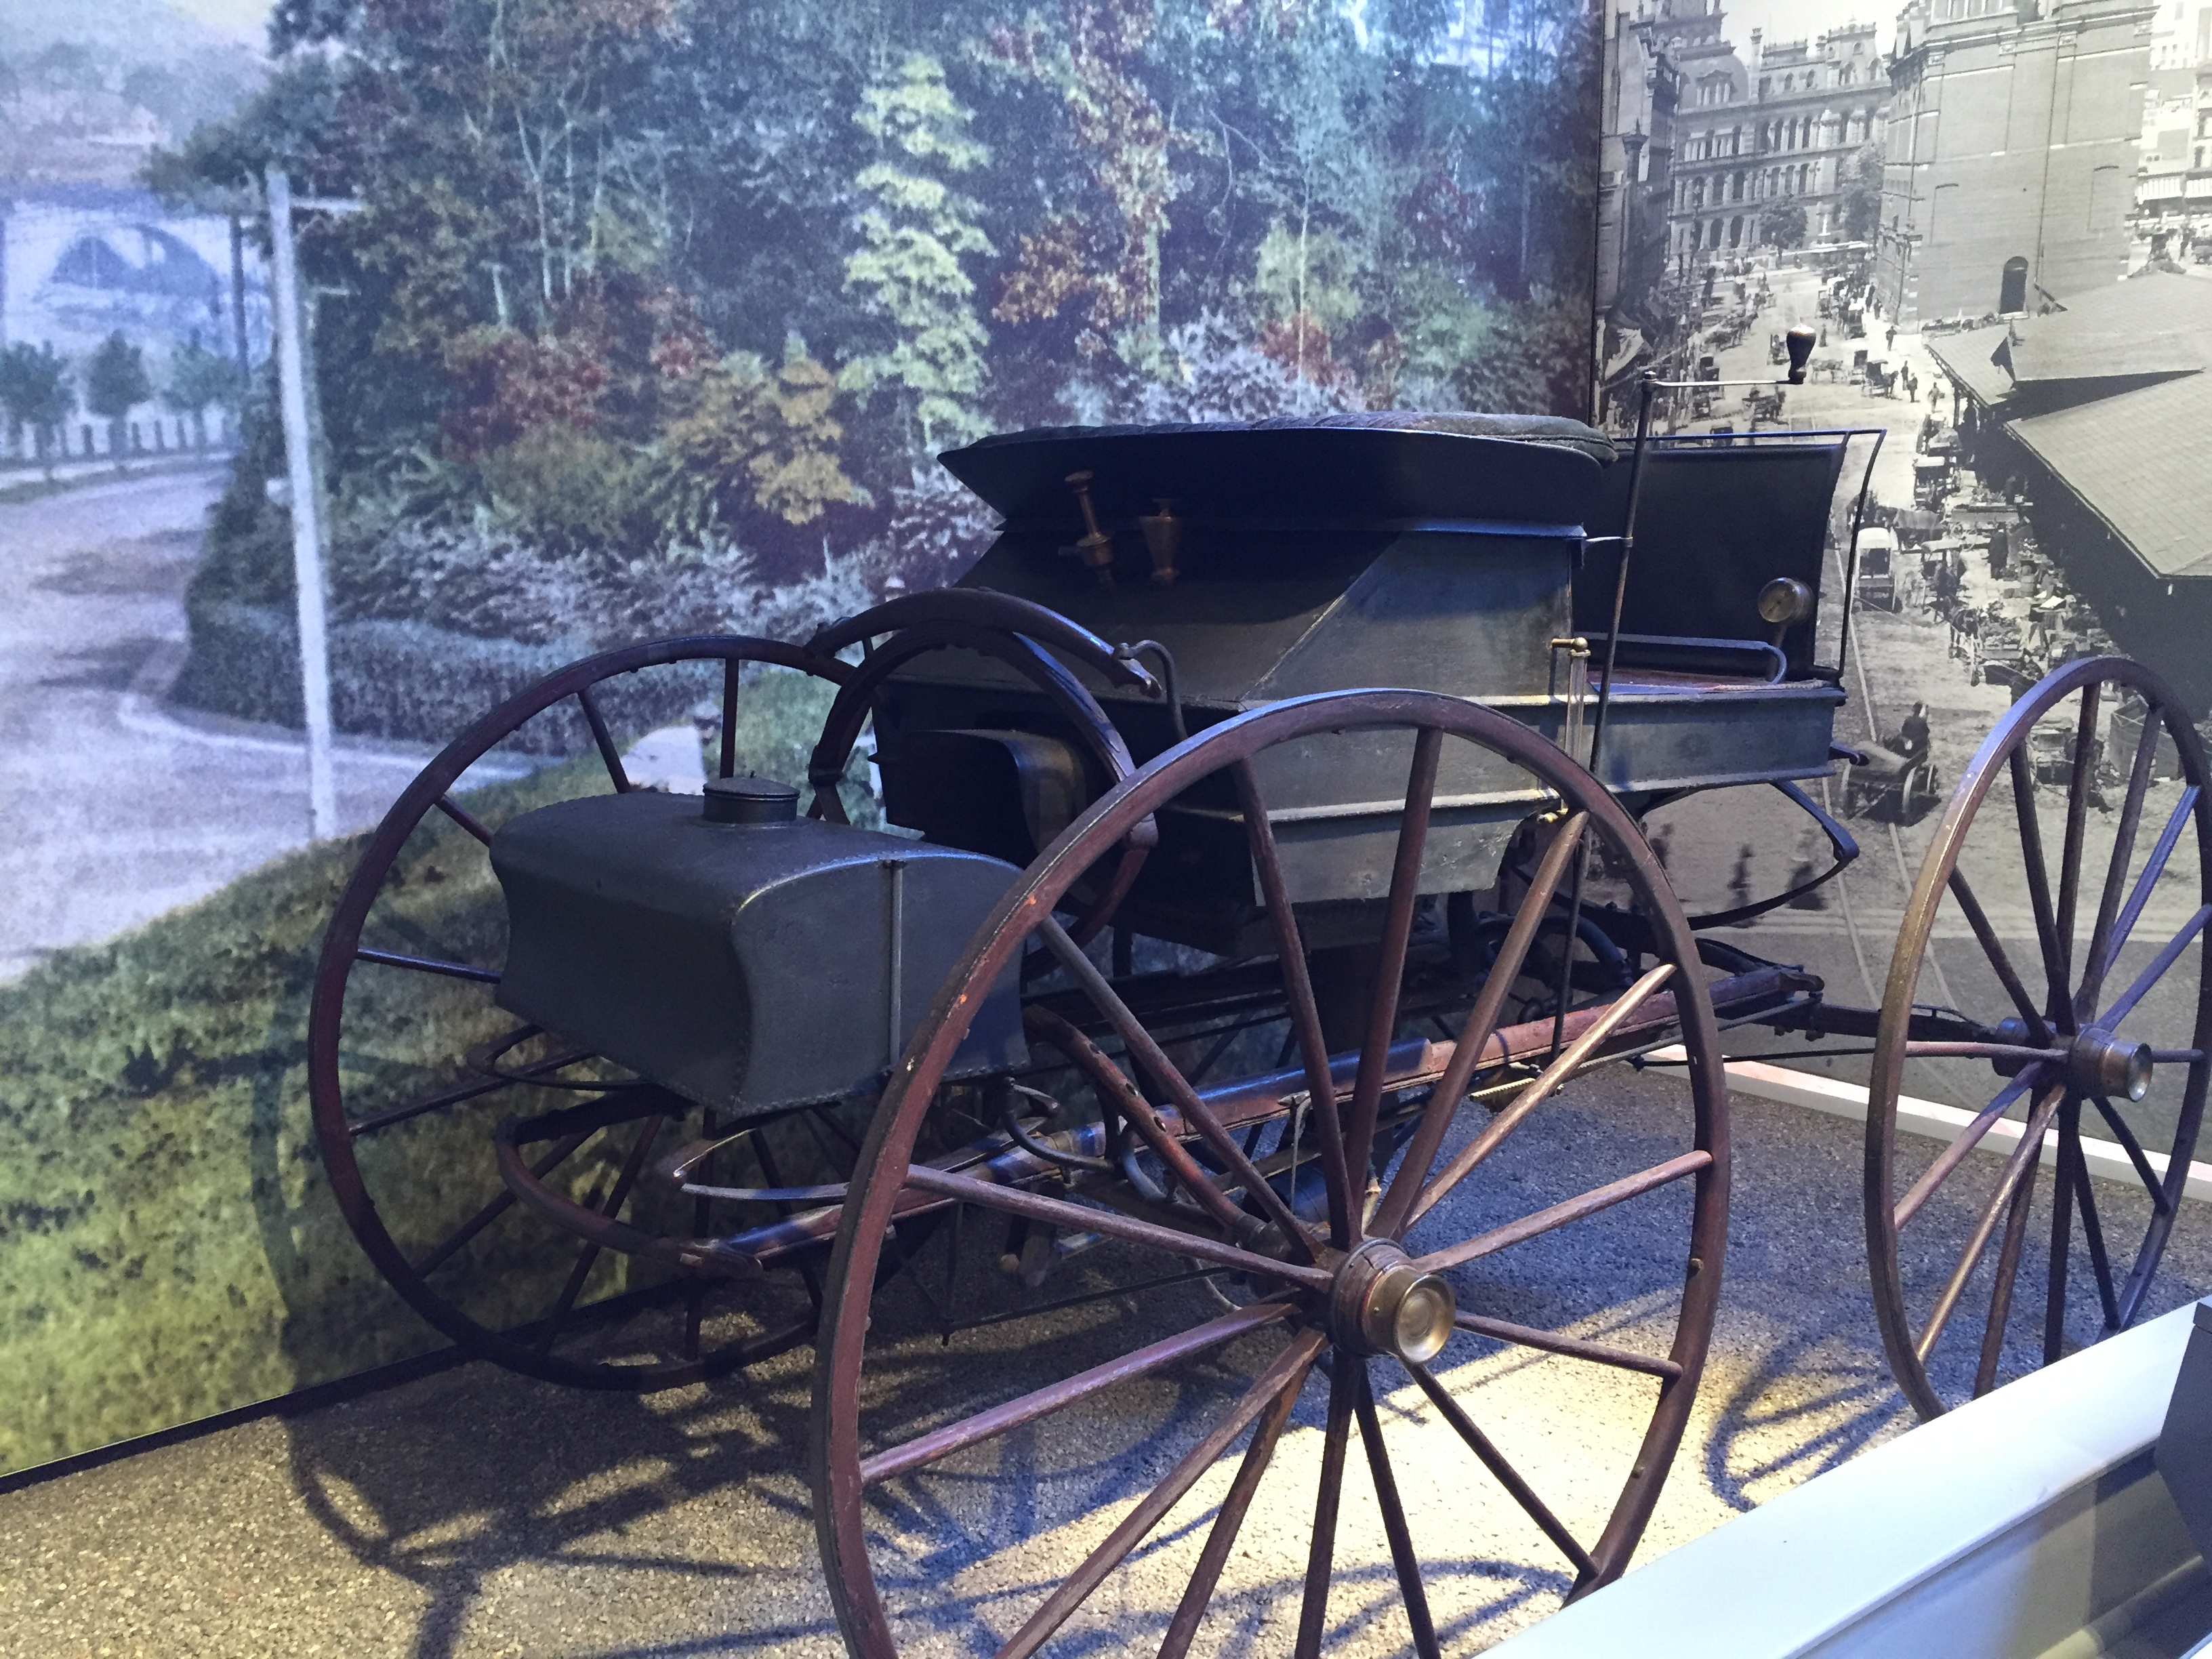 An early version of a car that looks like a carriage with a motor.